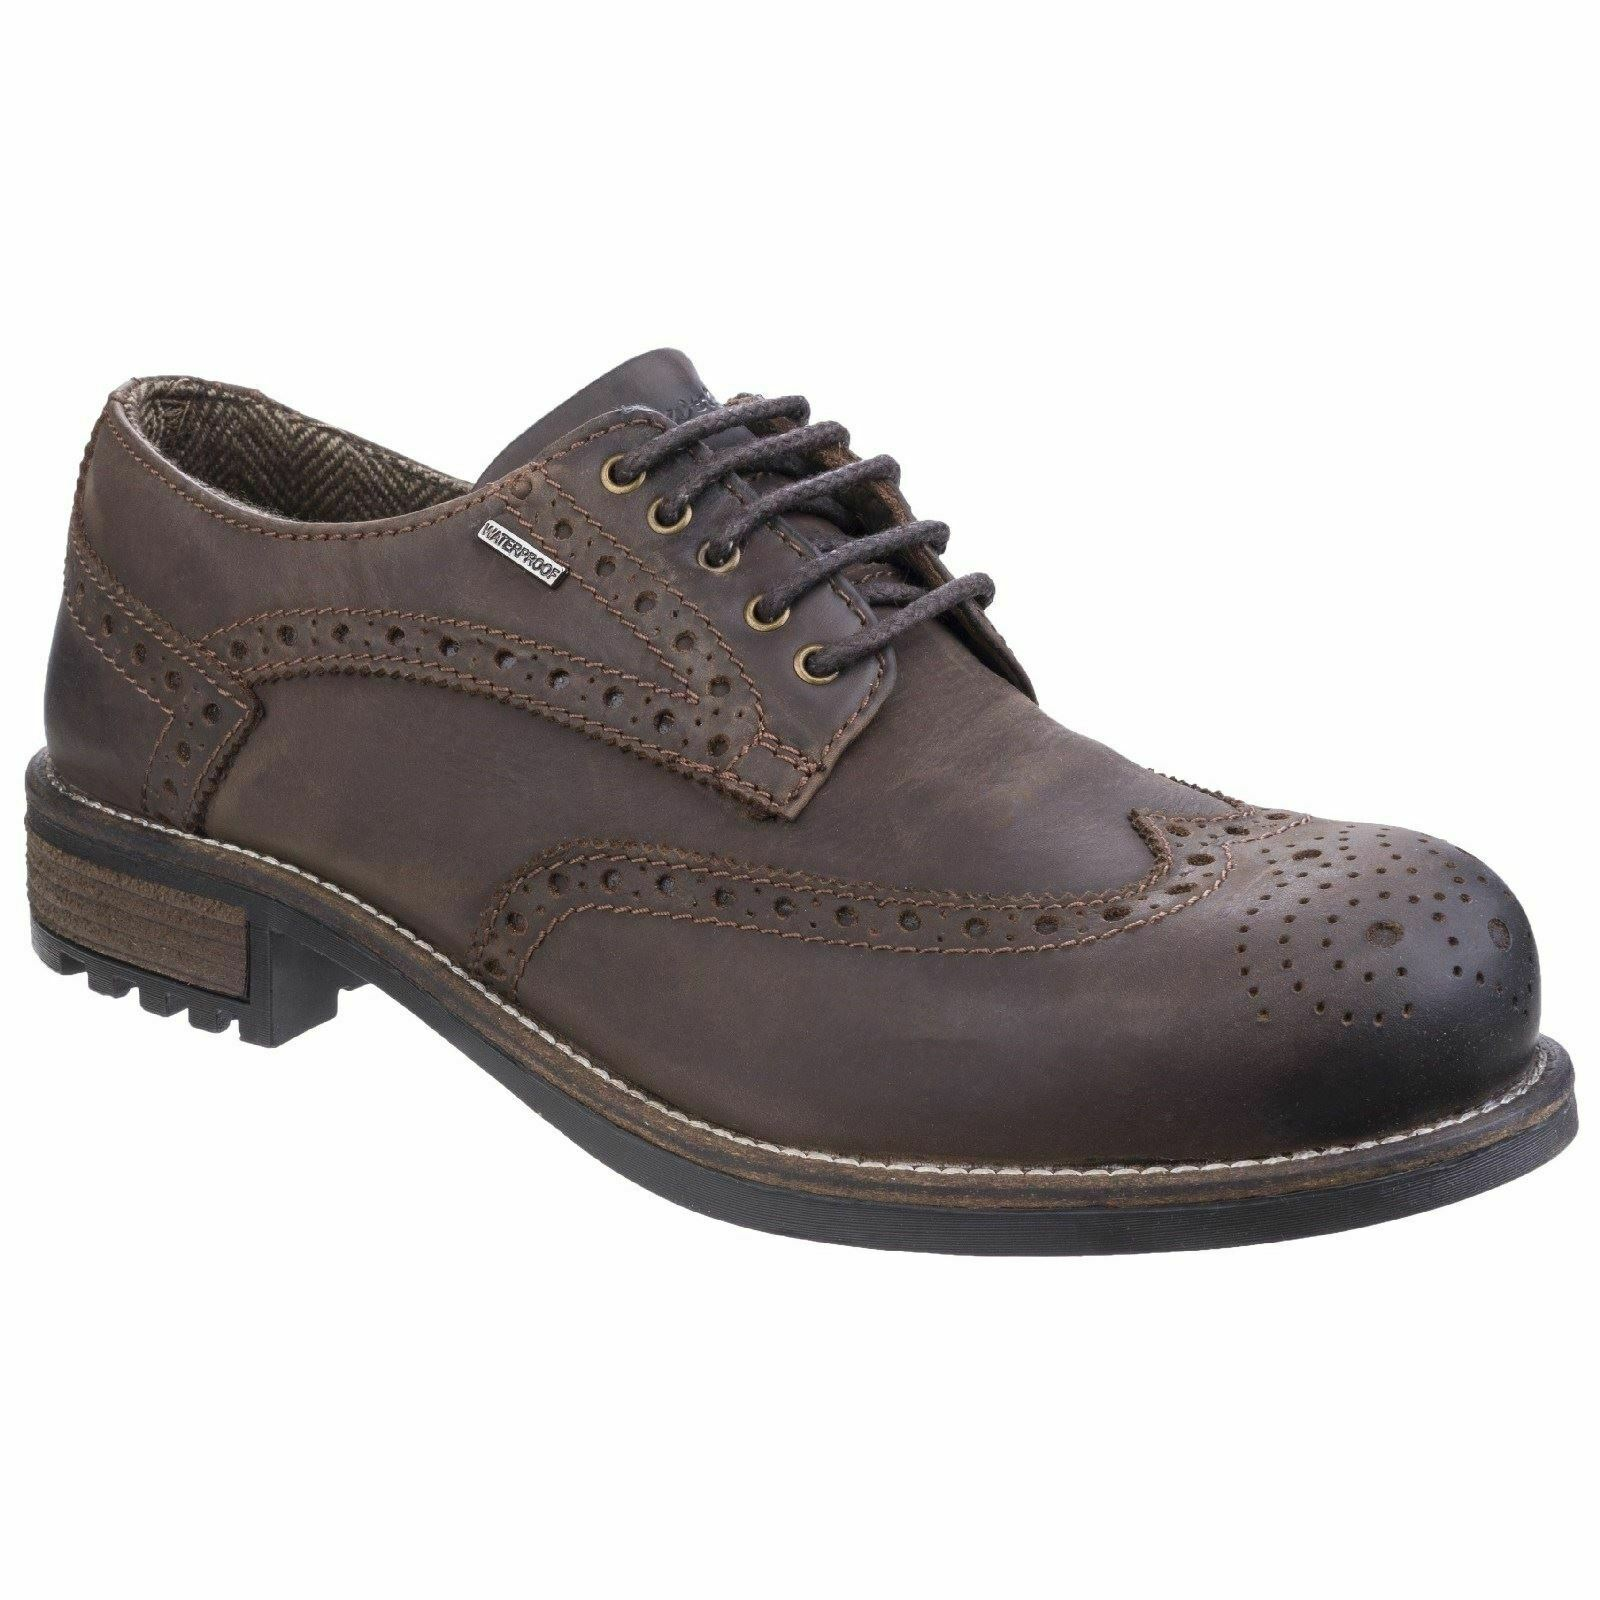 Cotswold Lace Mens shoes Oxford shoes Brown Non Safety